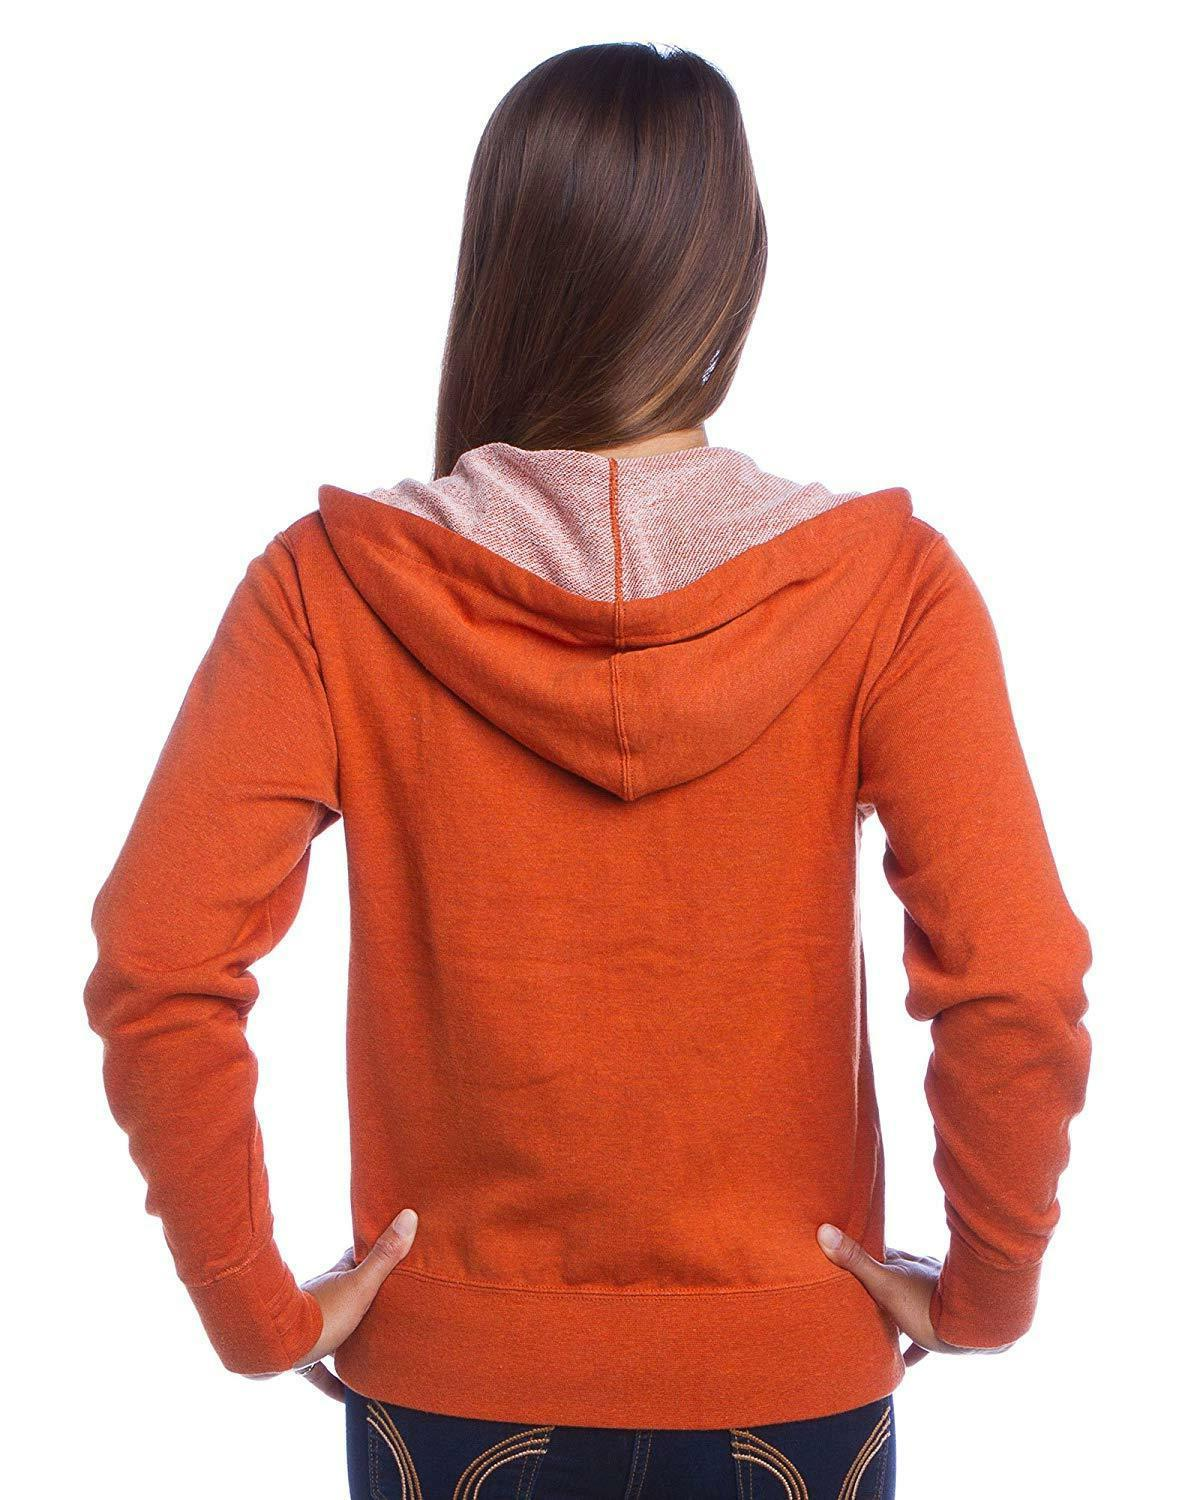 Global Slim French Terry Lightweight Up Hoodie Men and Women